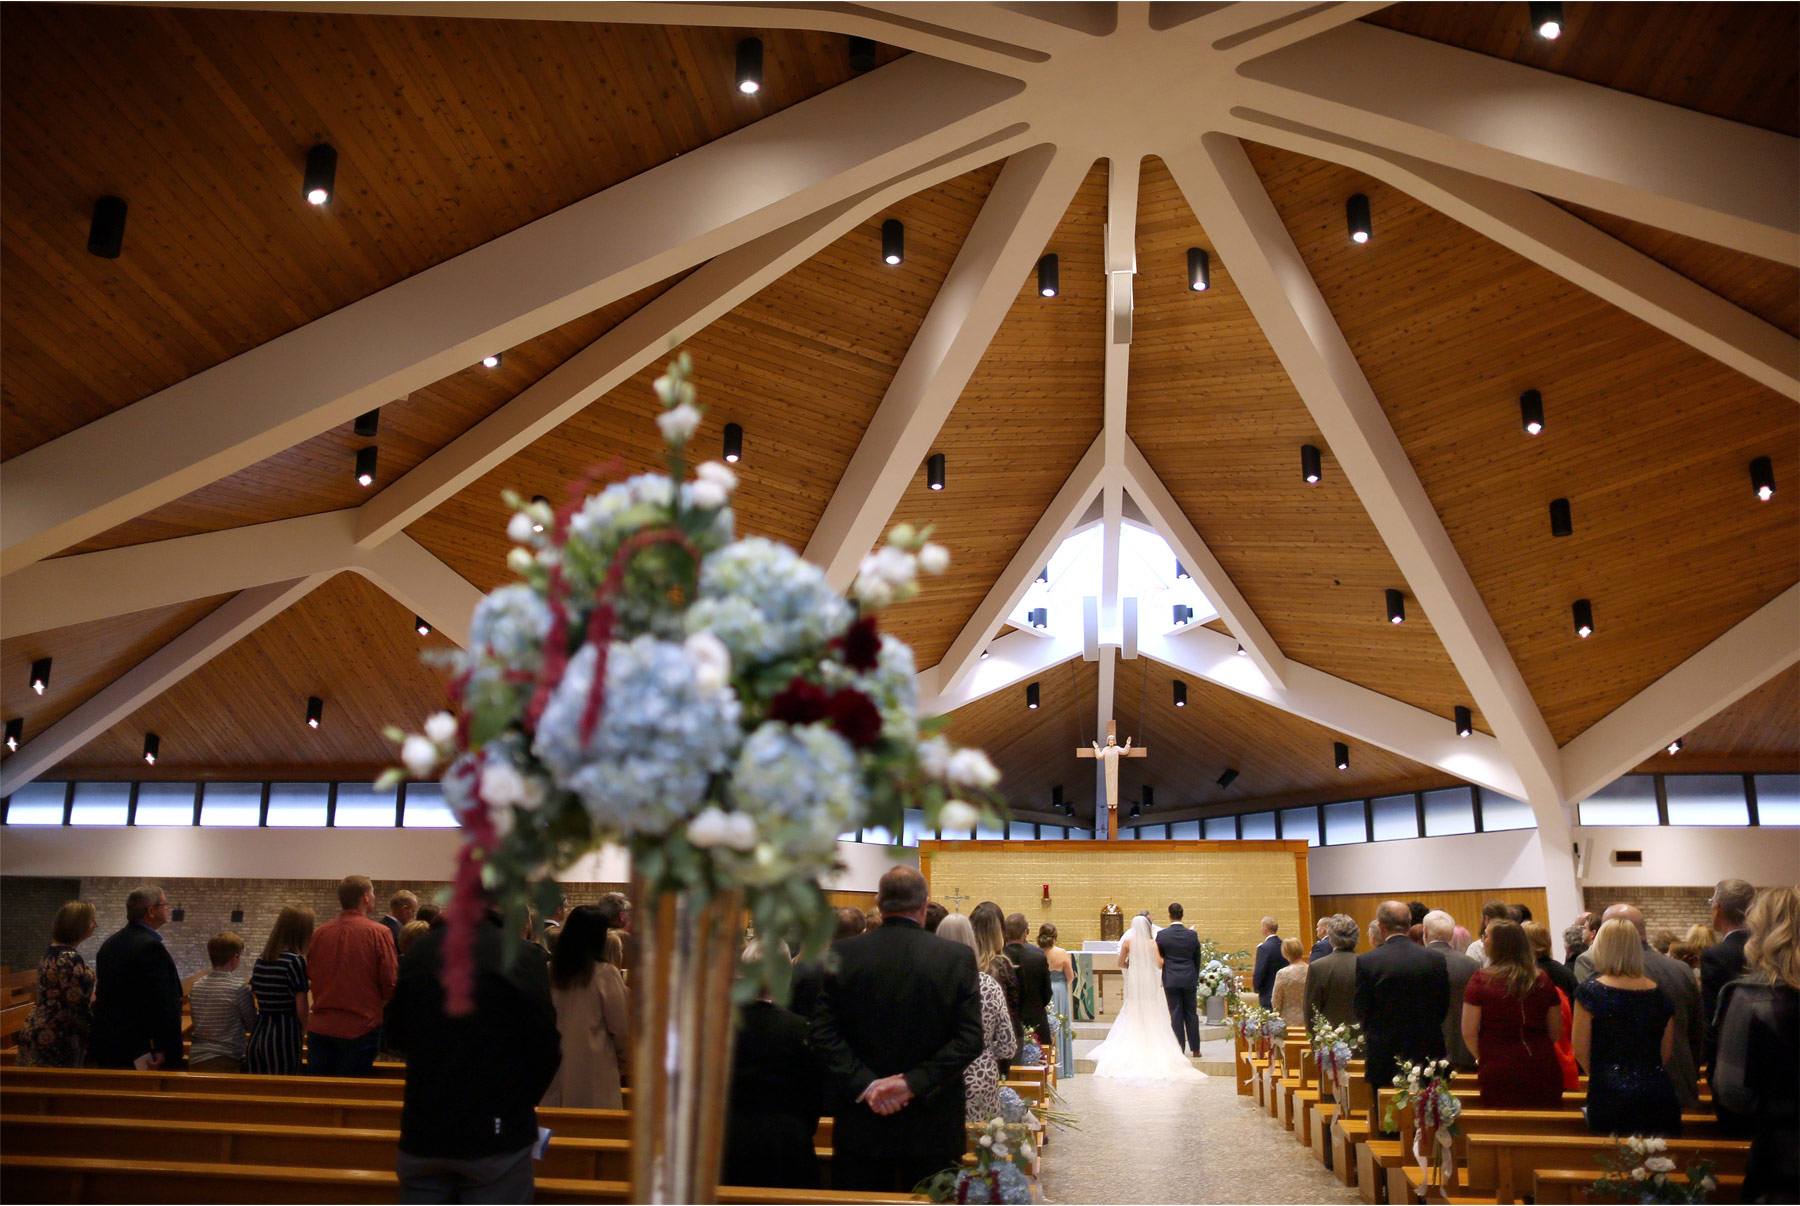 12-Minneapolis-Minnesota-Wedding-Photography-by-Vick-Photography-Our-Lady-of-the-Lake-Catholic-Church-Ceremony-Jana-and-Matt.jpg